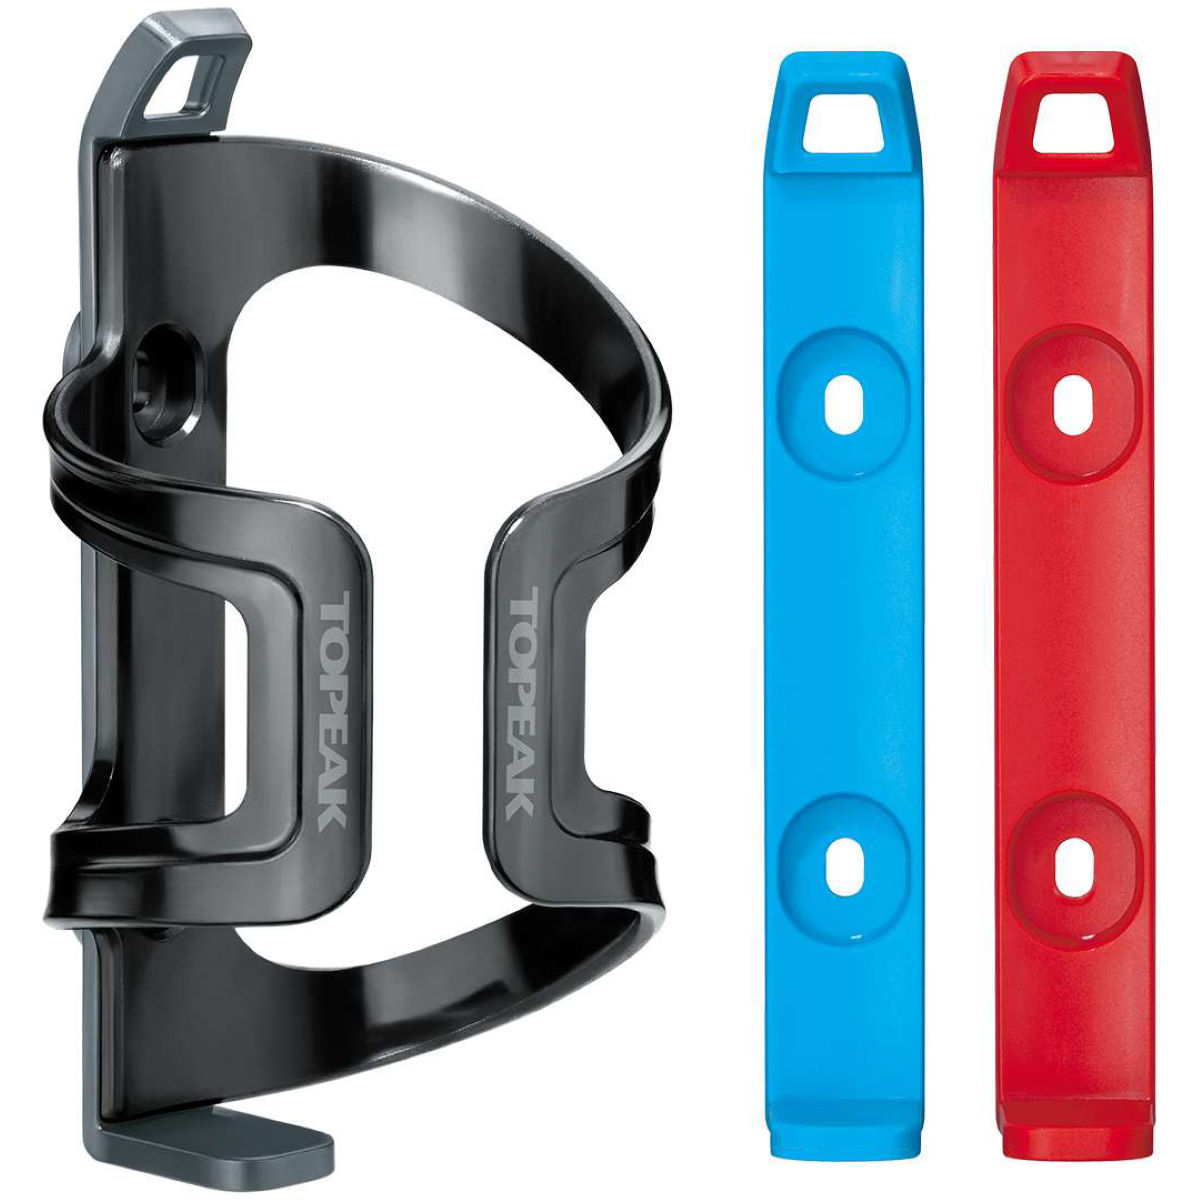 Porte-bidon Topeak Dualside Ex - Taille unique Grey - Blue - Red